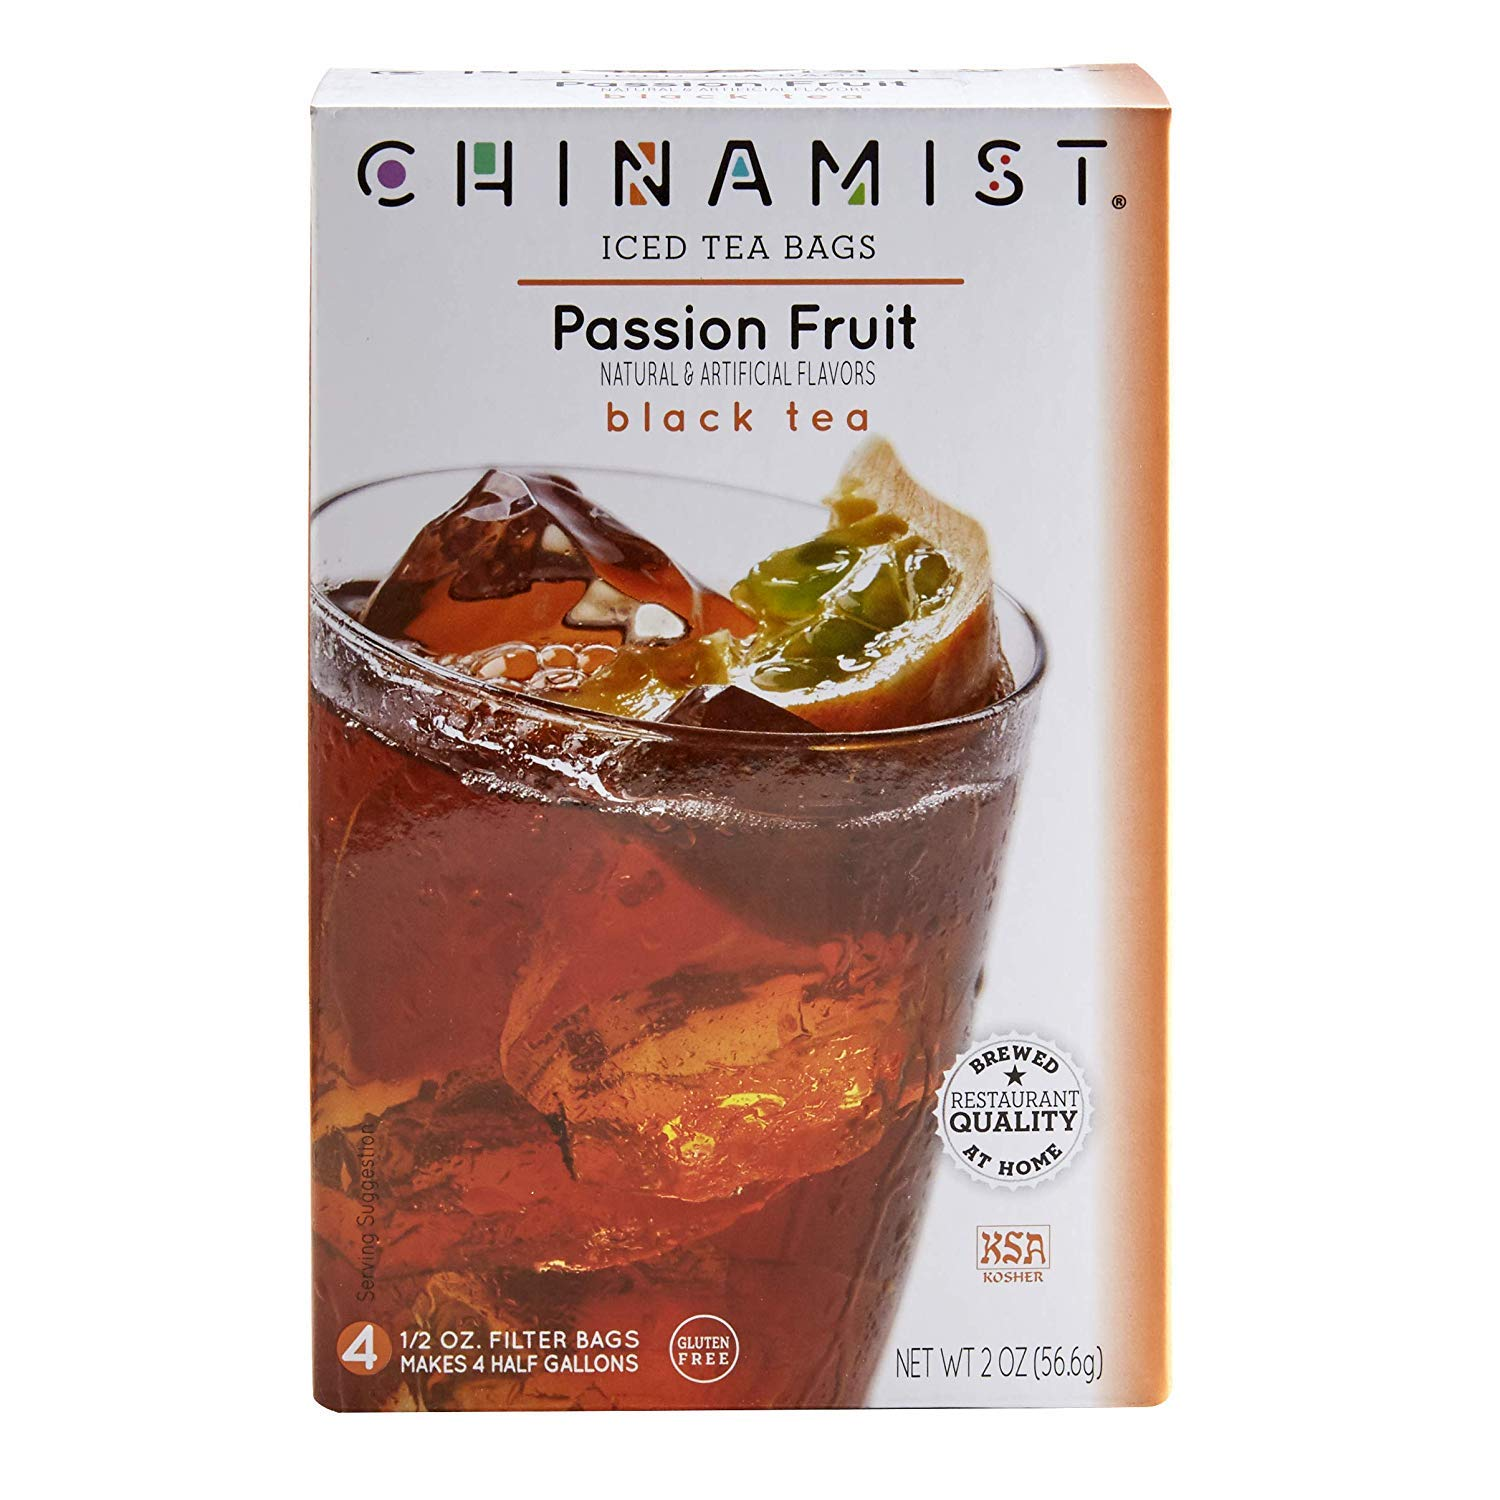 China Mist, Passion Fruit Black Tea Bags for Iced Tea, (6 Pack) by China Mist